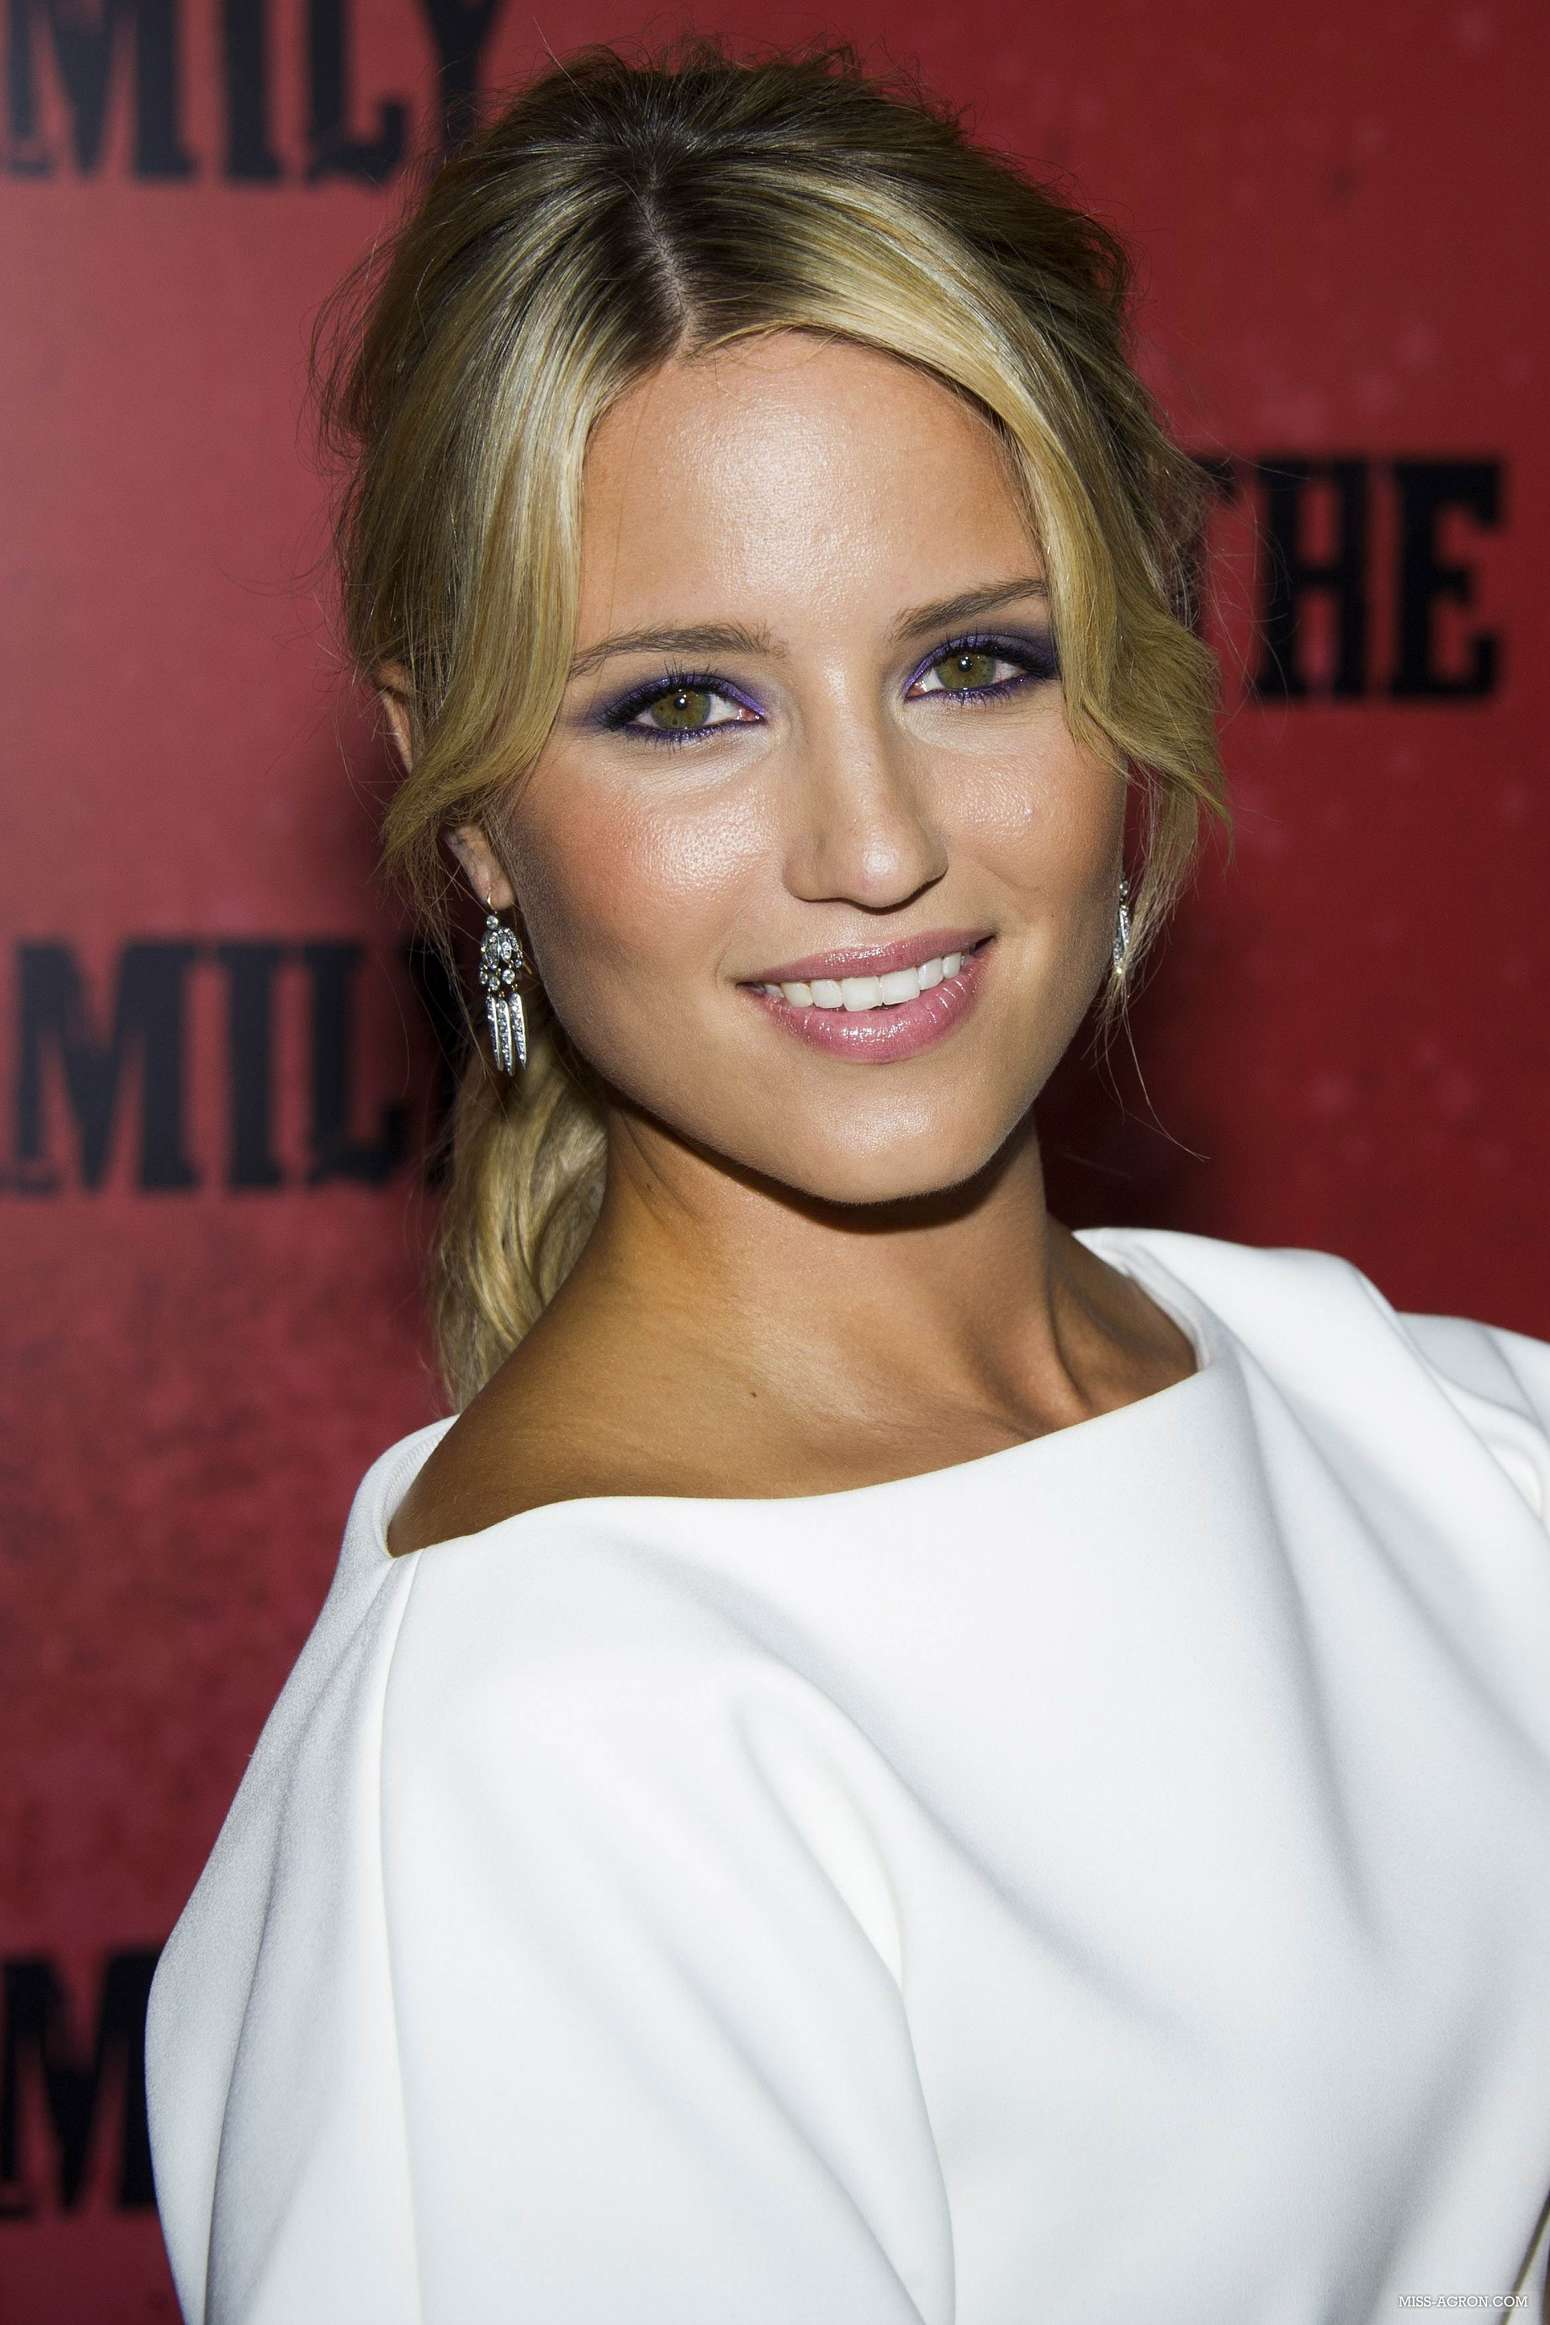 Dianna Agron The Family Premiere In New York 04 Gotceleb